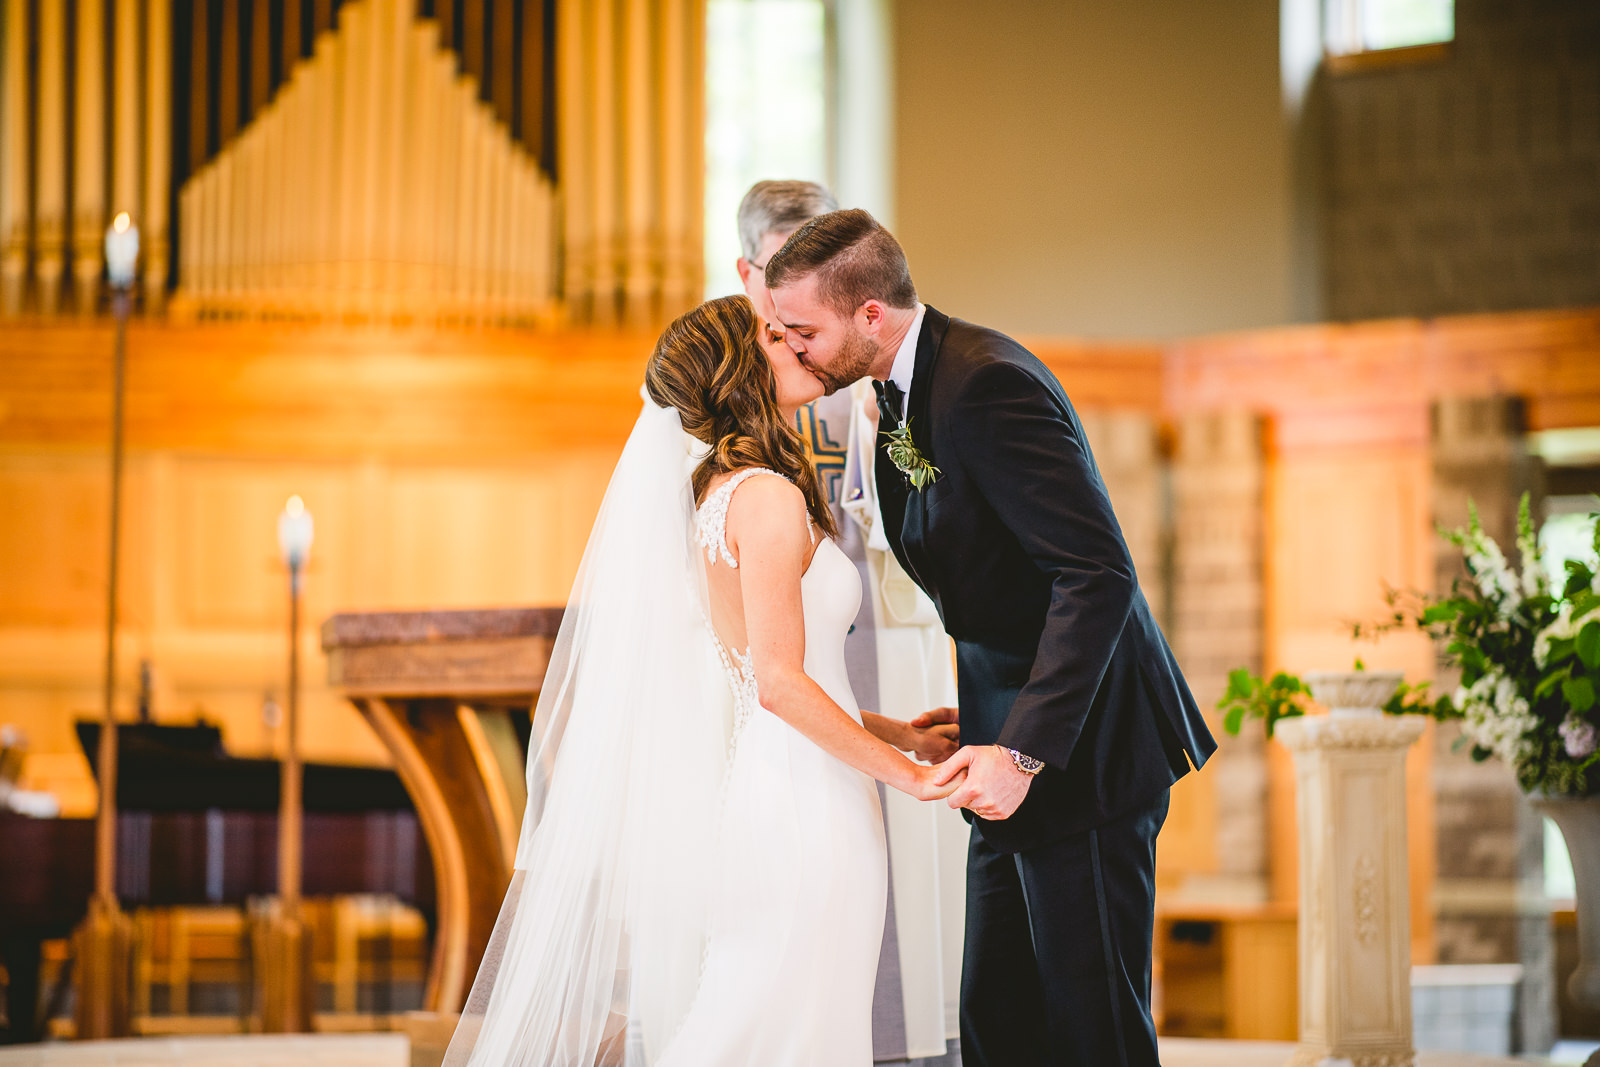 29 how to photograph first kiss - Club of Hillbrook Wedding // Jenna + Ben